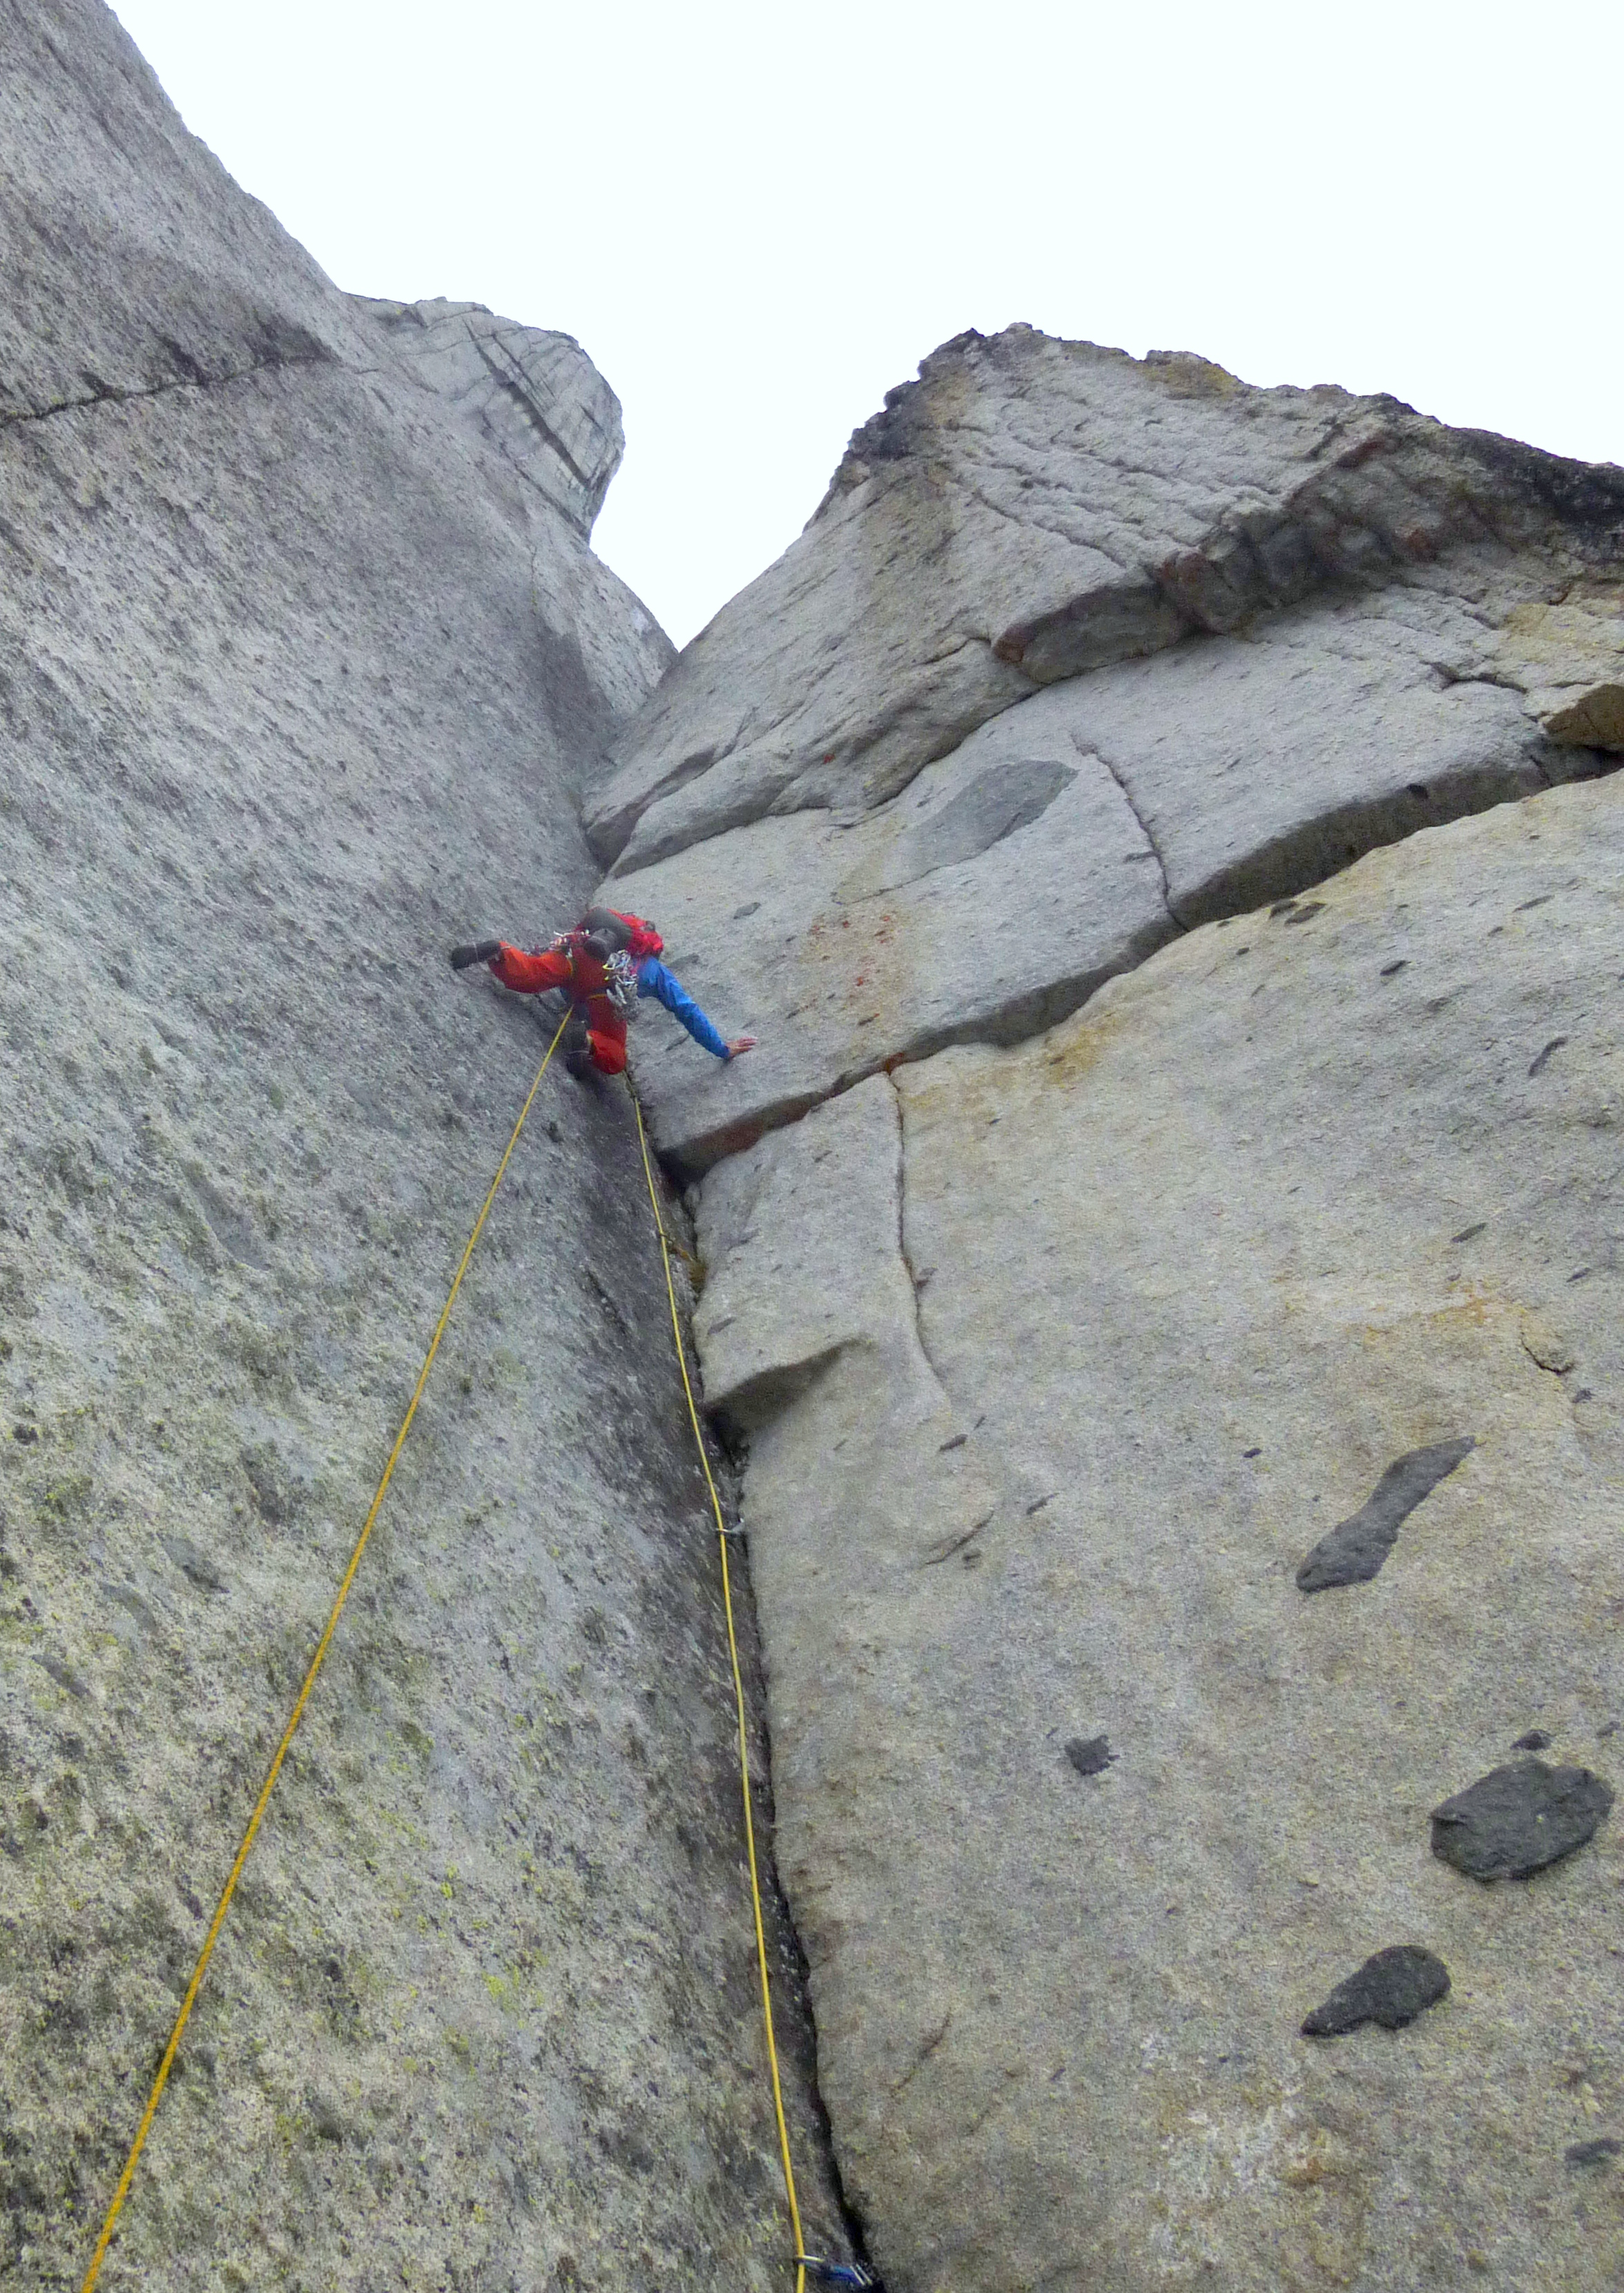 Cirque of the unclimbables finn mccann leading pitch 11 of the lotus flower tower izmirmasajfo